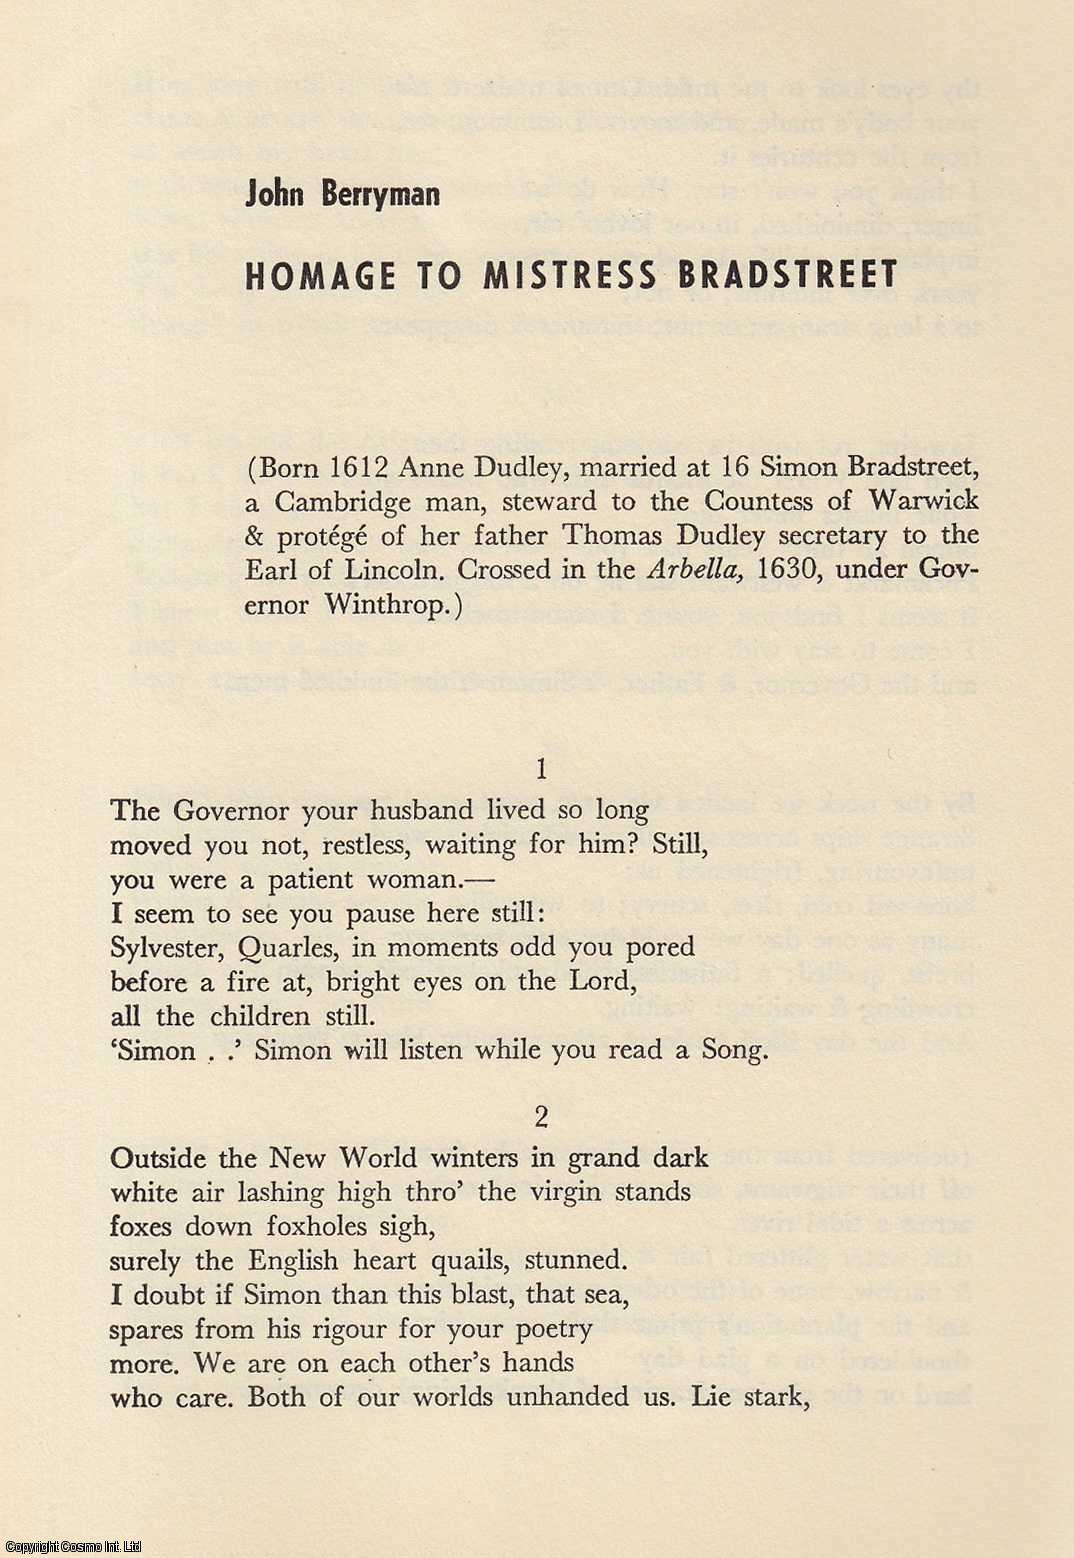 JOHN BERRYMAN - Homage to Mistress Bradstreet (a poem). An original article from the Partisan Review 1953.